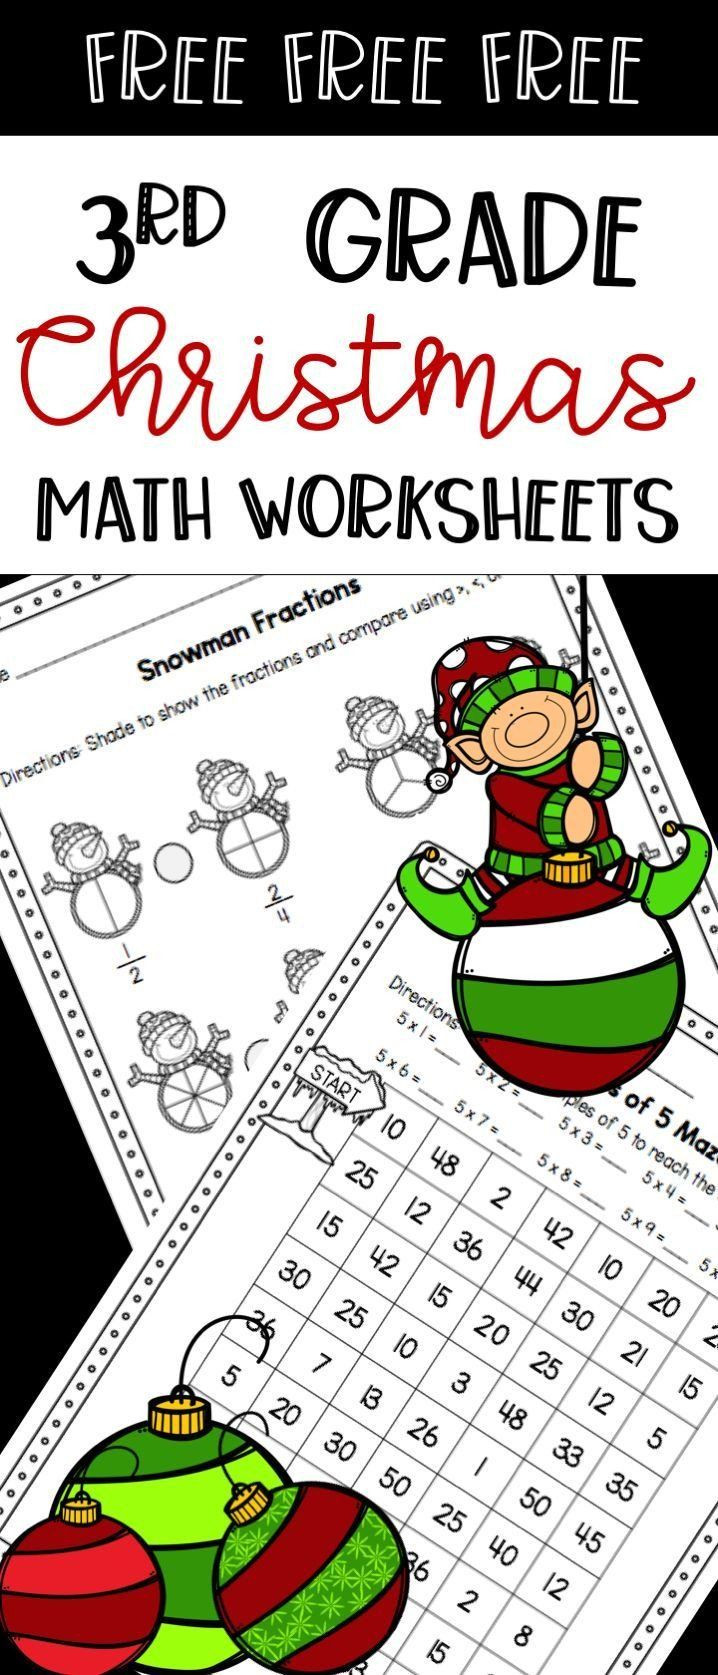 3rd Grade Christmas Worksheets Christmas Math Worksheets 3rd Grade Christmas Worksheets